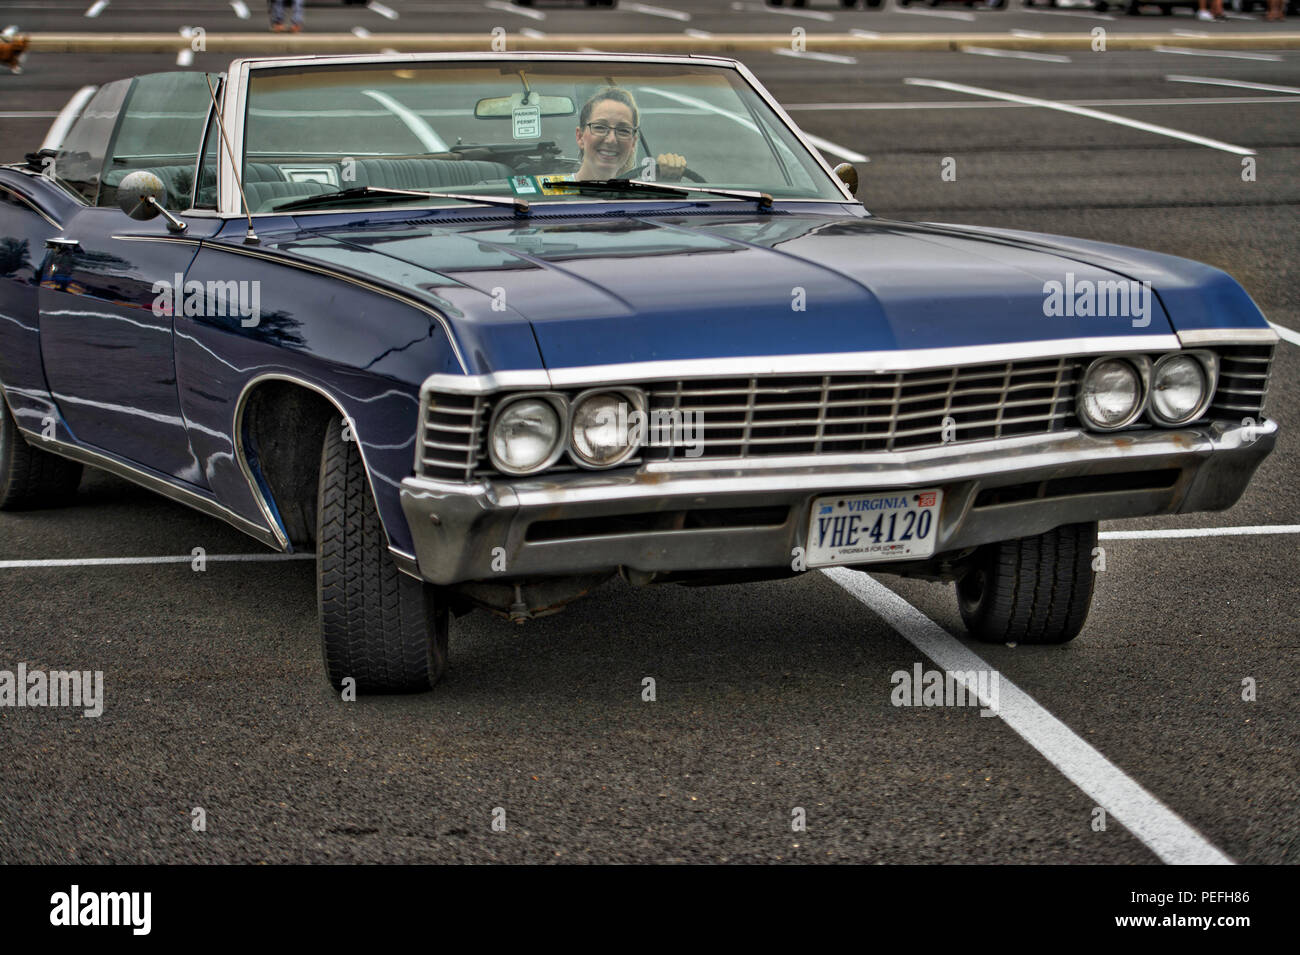 UNITED STATES: August 12, 2018: Brenda McGrath poses for some photos in her 1967 Chevrolet Impala Super Sport Convertible at the Cars & Coffee event a - Stock Image